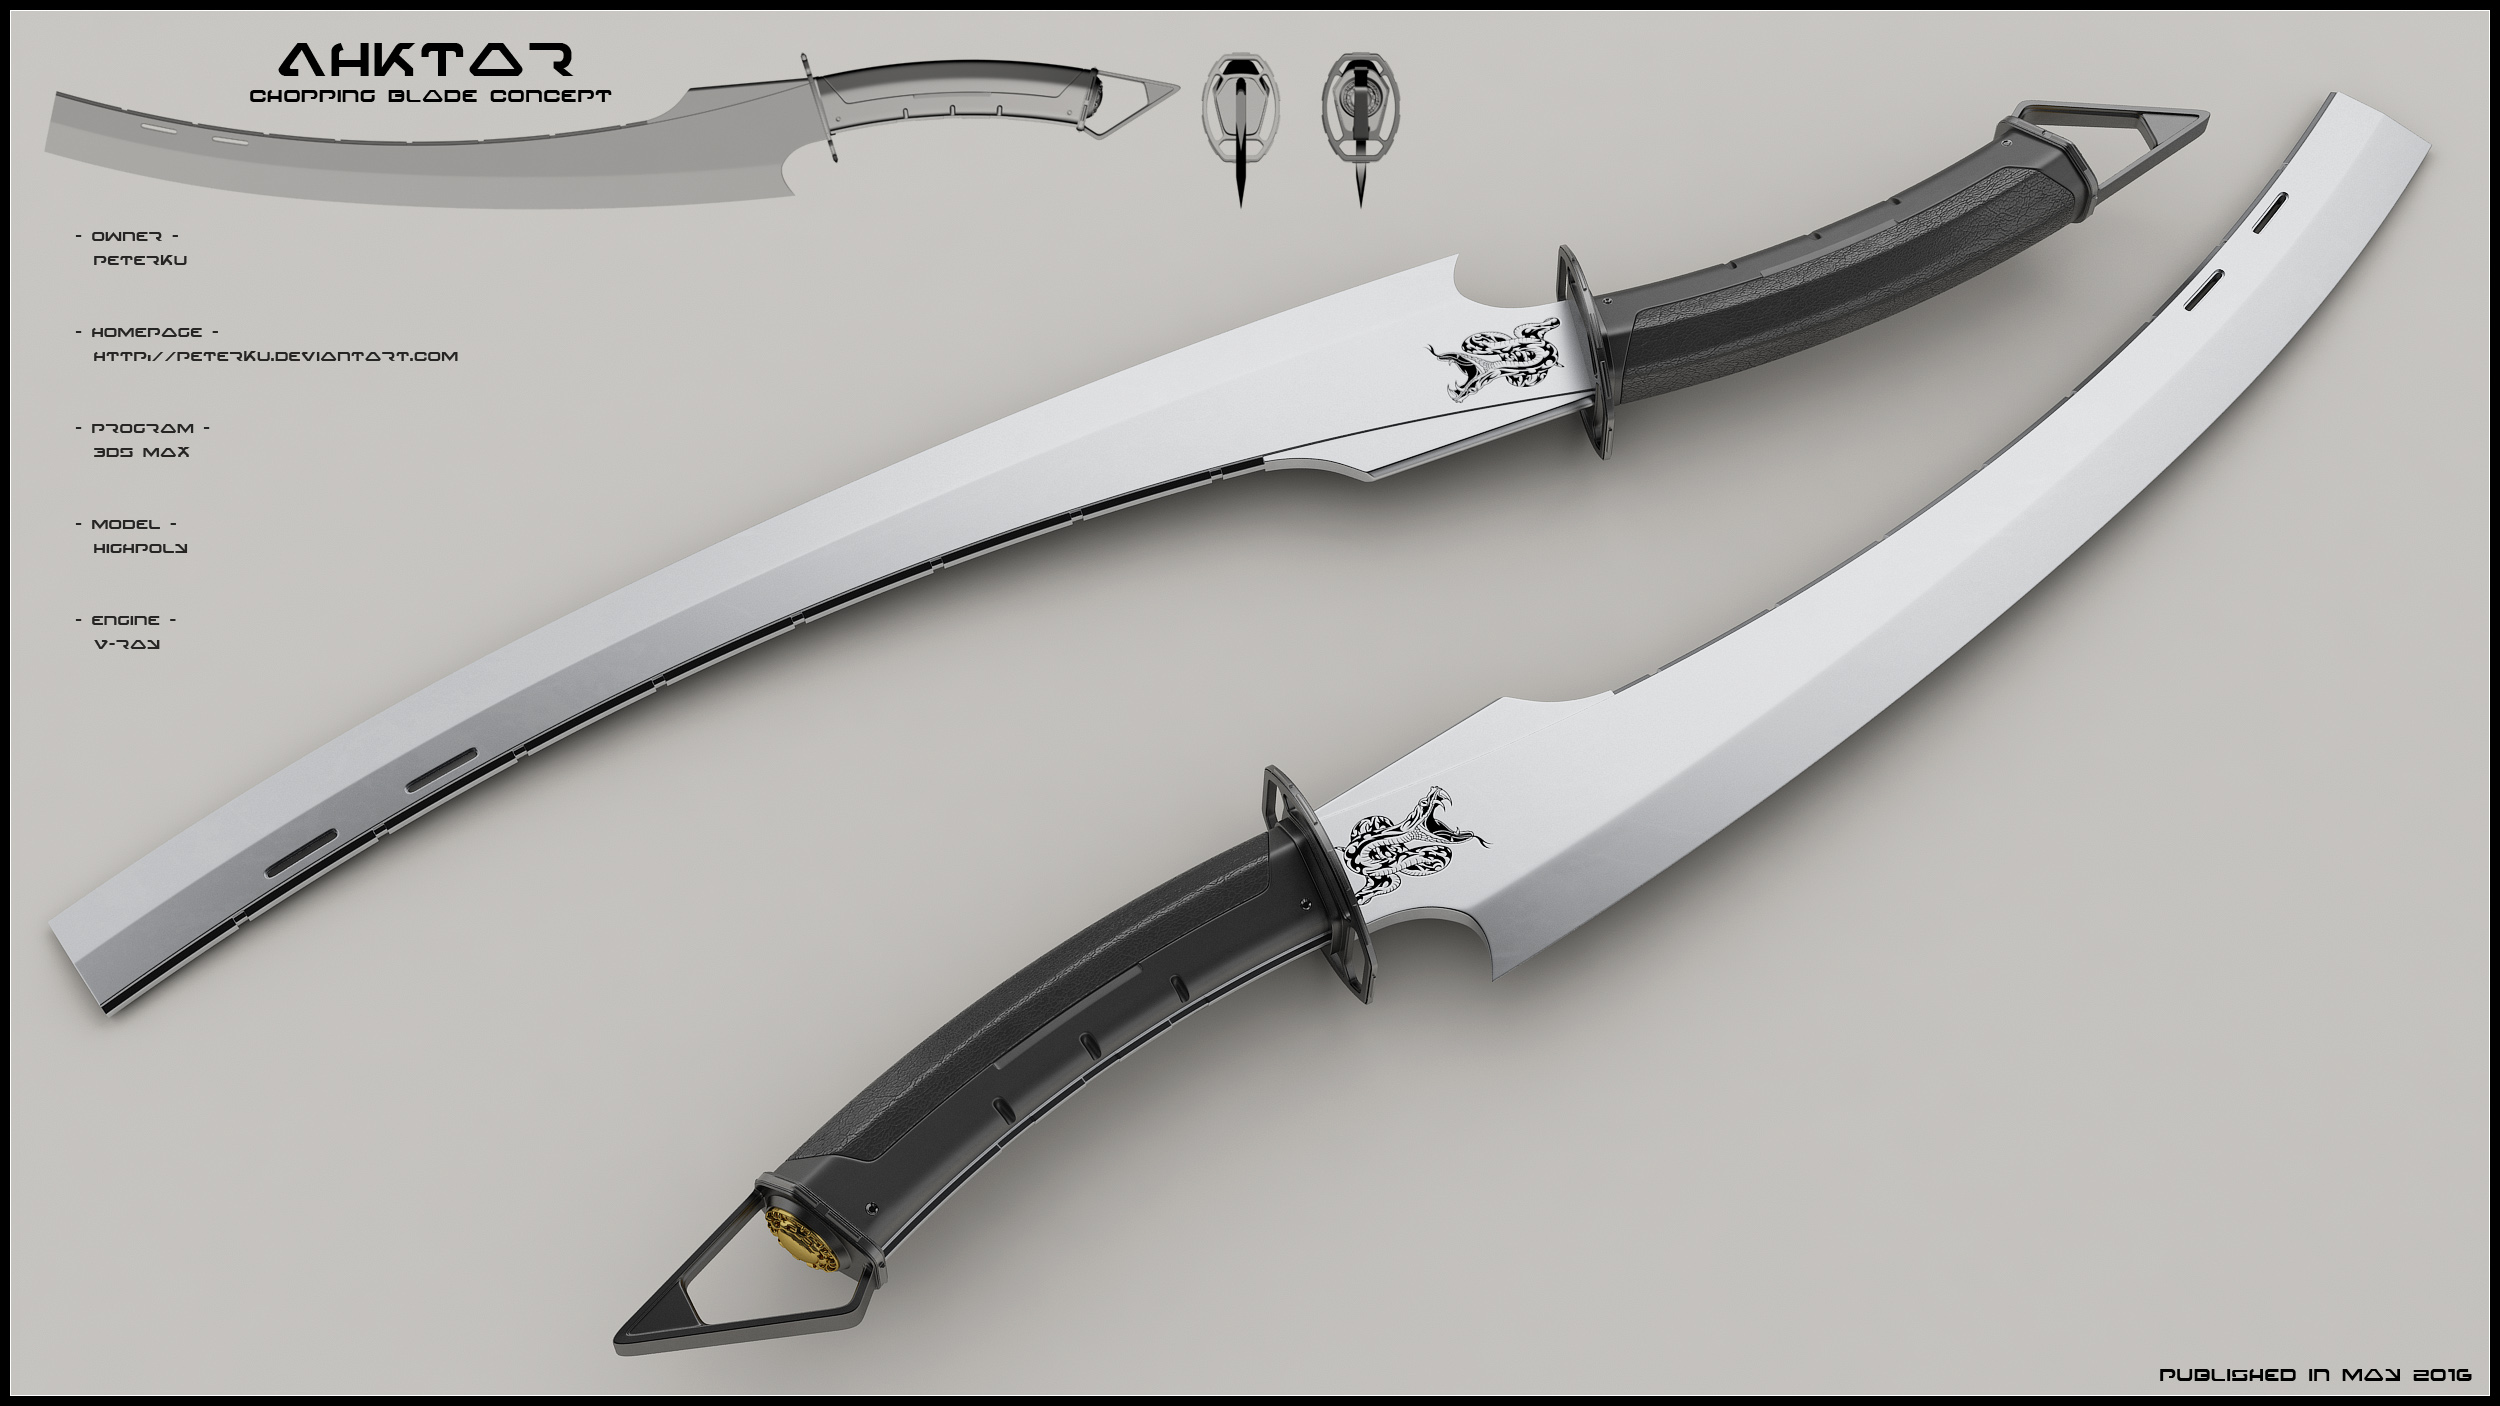 Ahktar Concept Of Modern Chopping Blade By Peterku On Deviantart